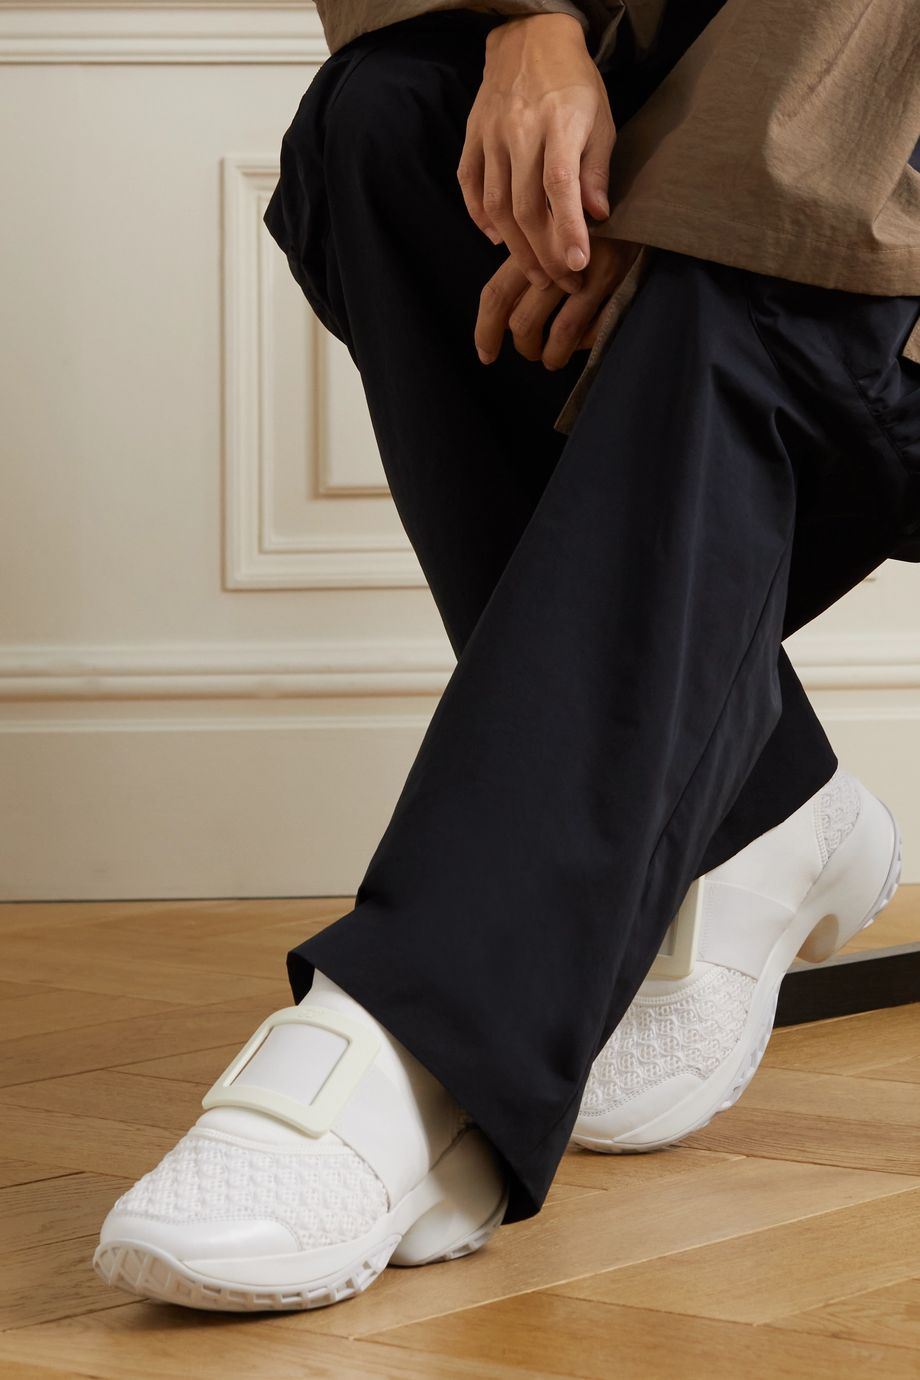 Roger Vivier Viv Run neoprene, mesh and leather sneakers